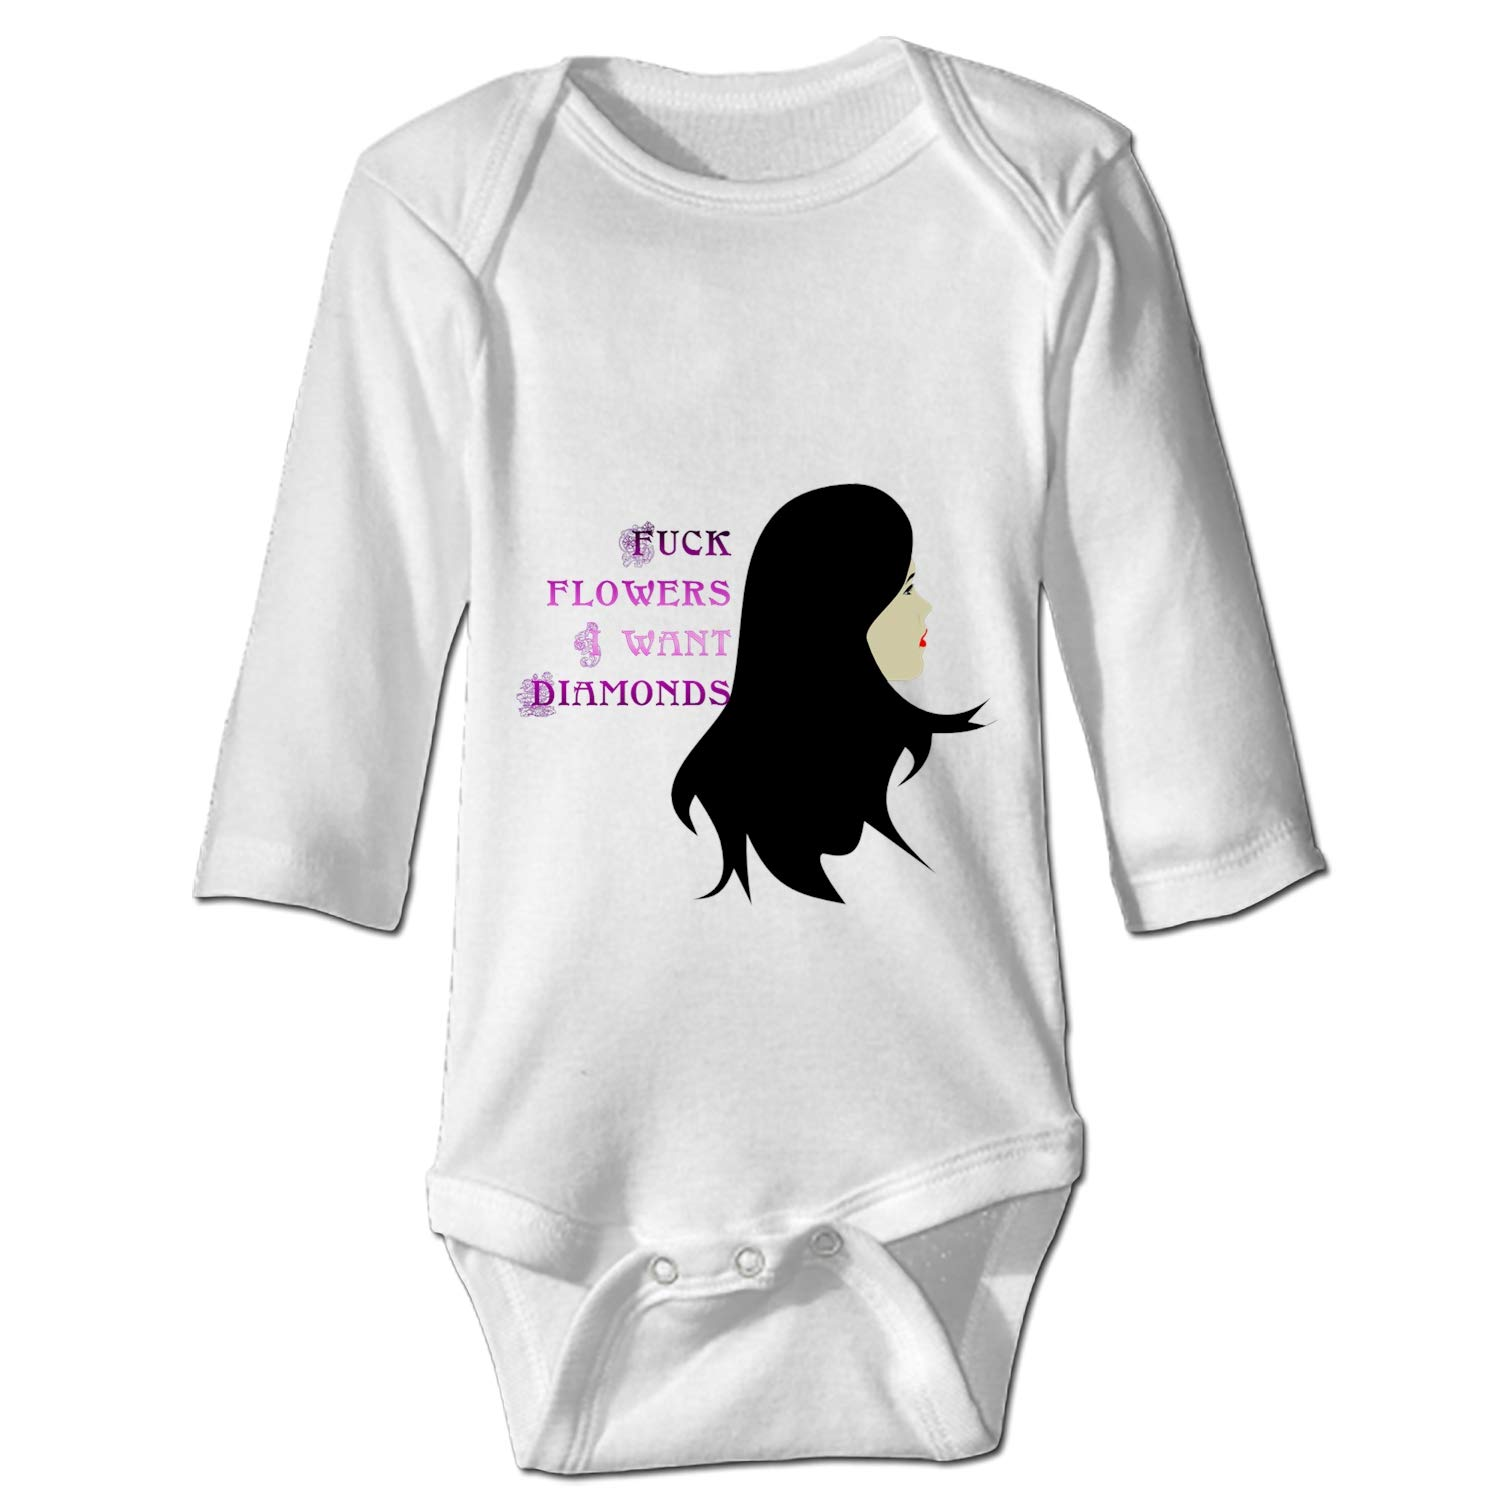 WilBstrn Whale in A Bottle Baby Girl Clothes Long Sleeve Onesies Romper Home Outfit